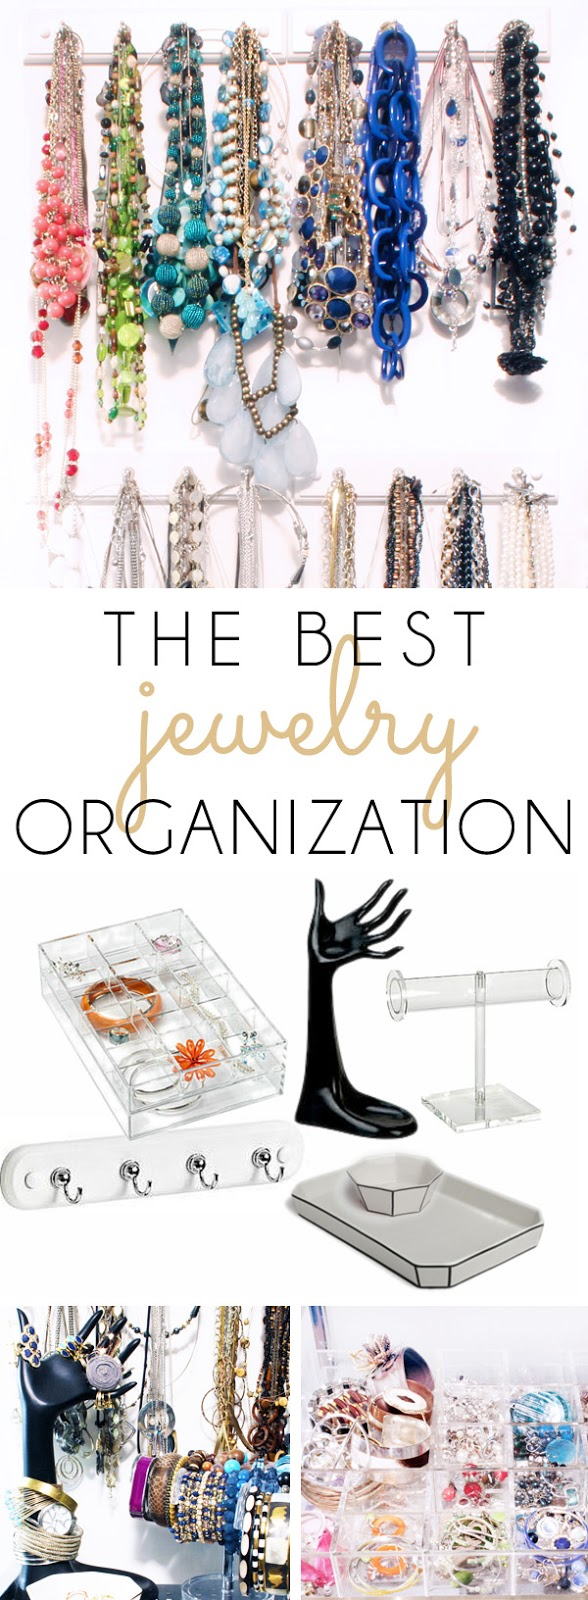 The Best Jewelry Organization